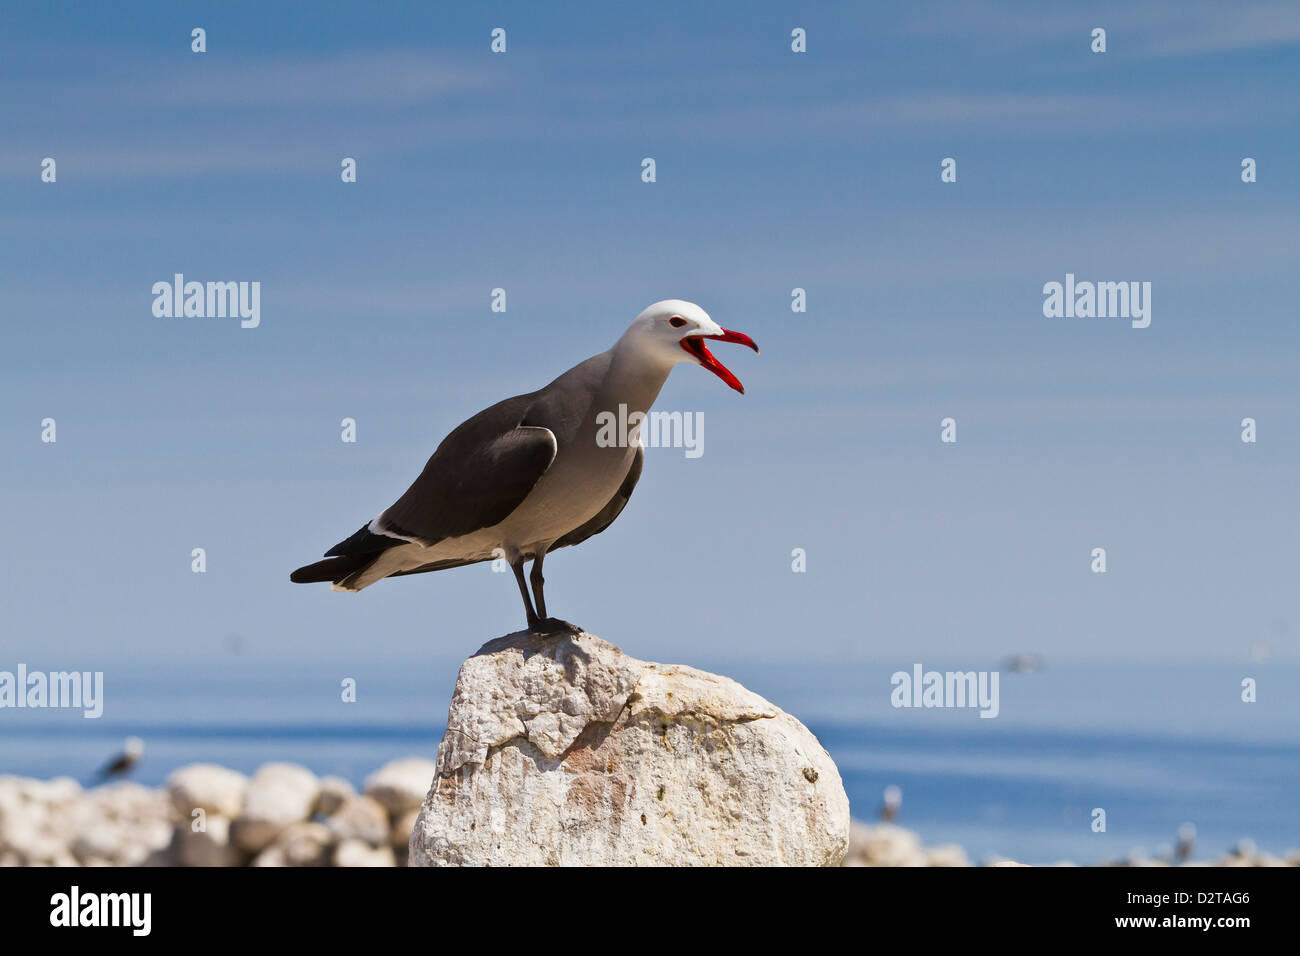 Heermann's gull (Larus heermanni), Isla Rasa, Gulf of California (Sea of Cortez), Mexico, North America - Stock Image